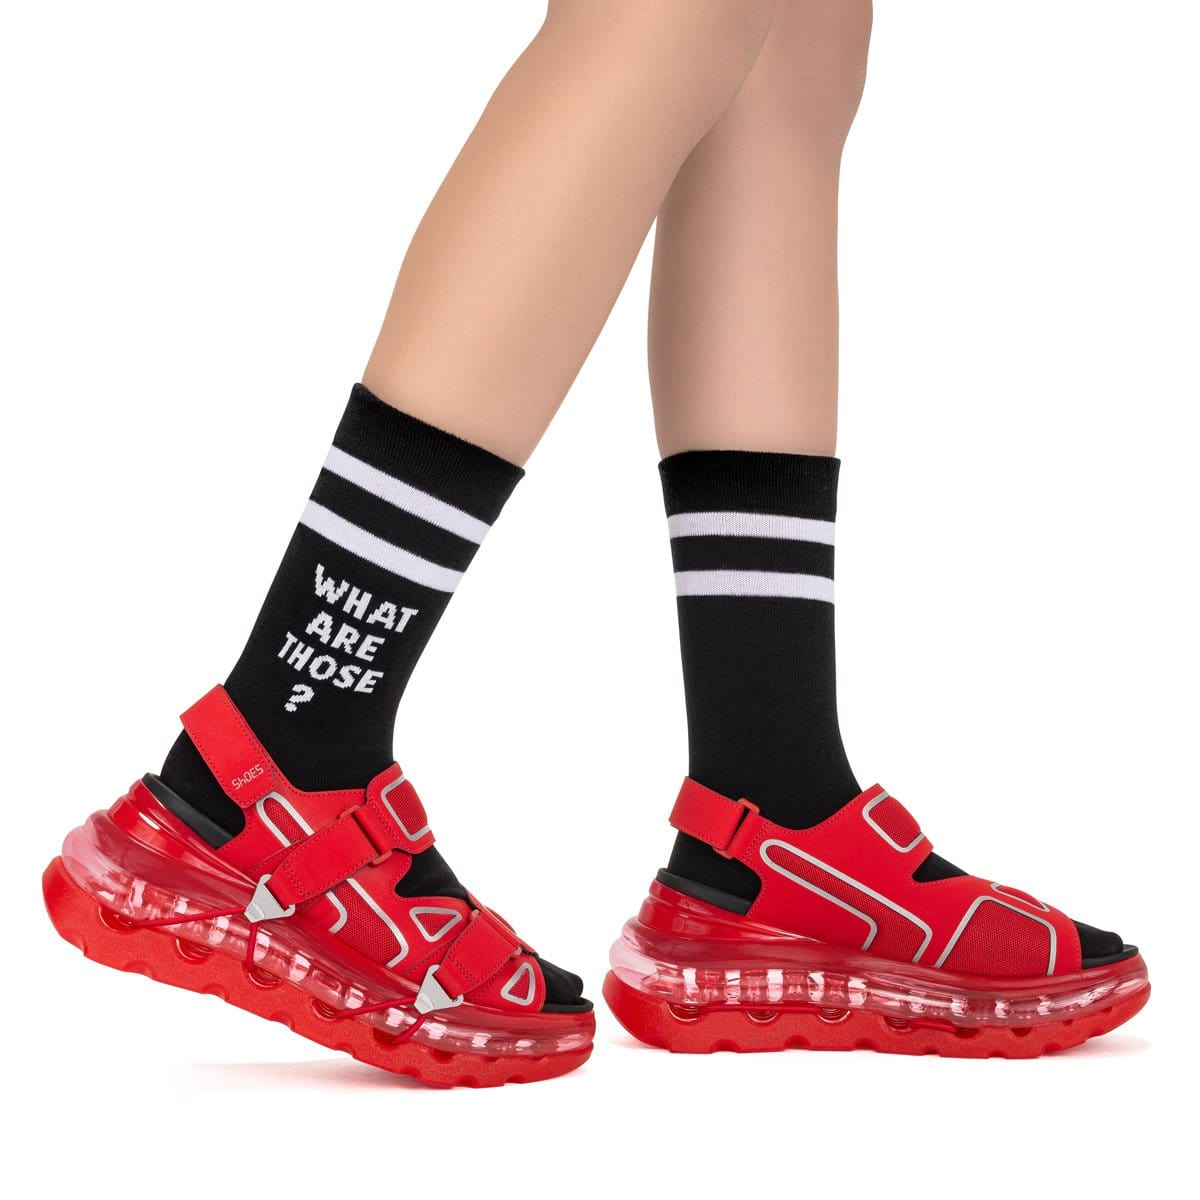 SHOES 53045 - CREW SOCKS - BLACK